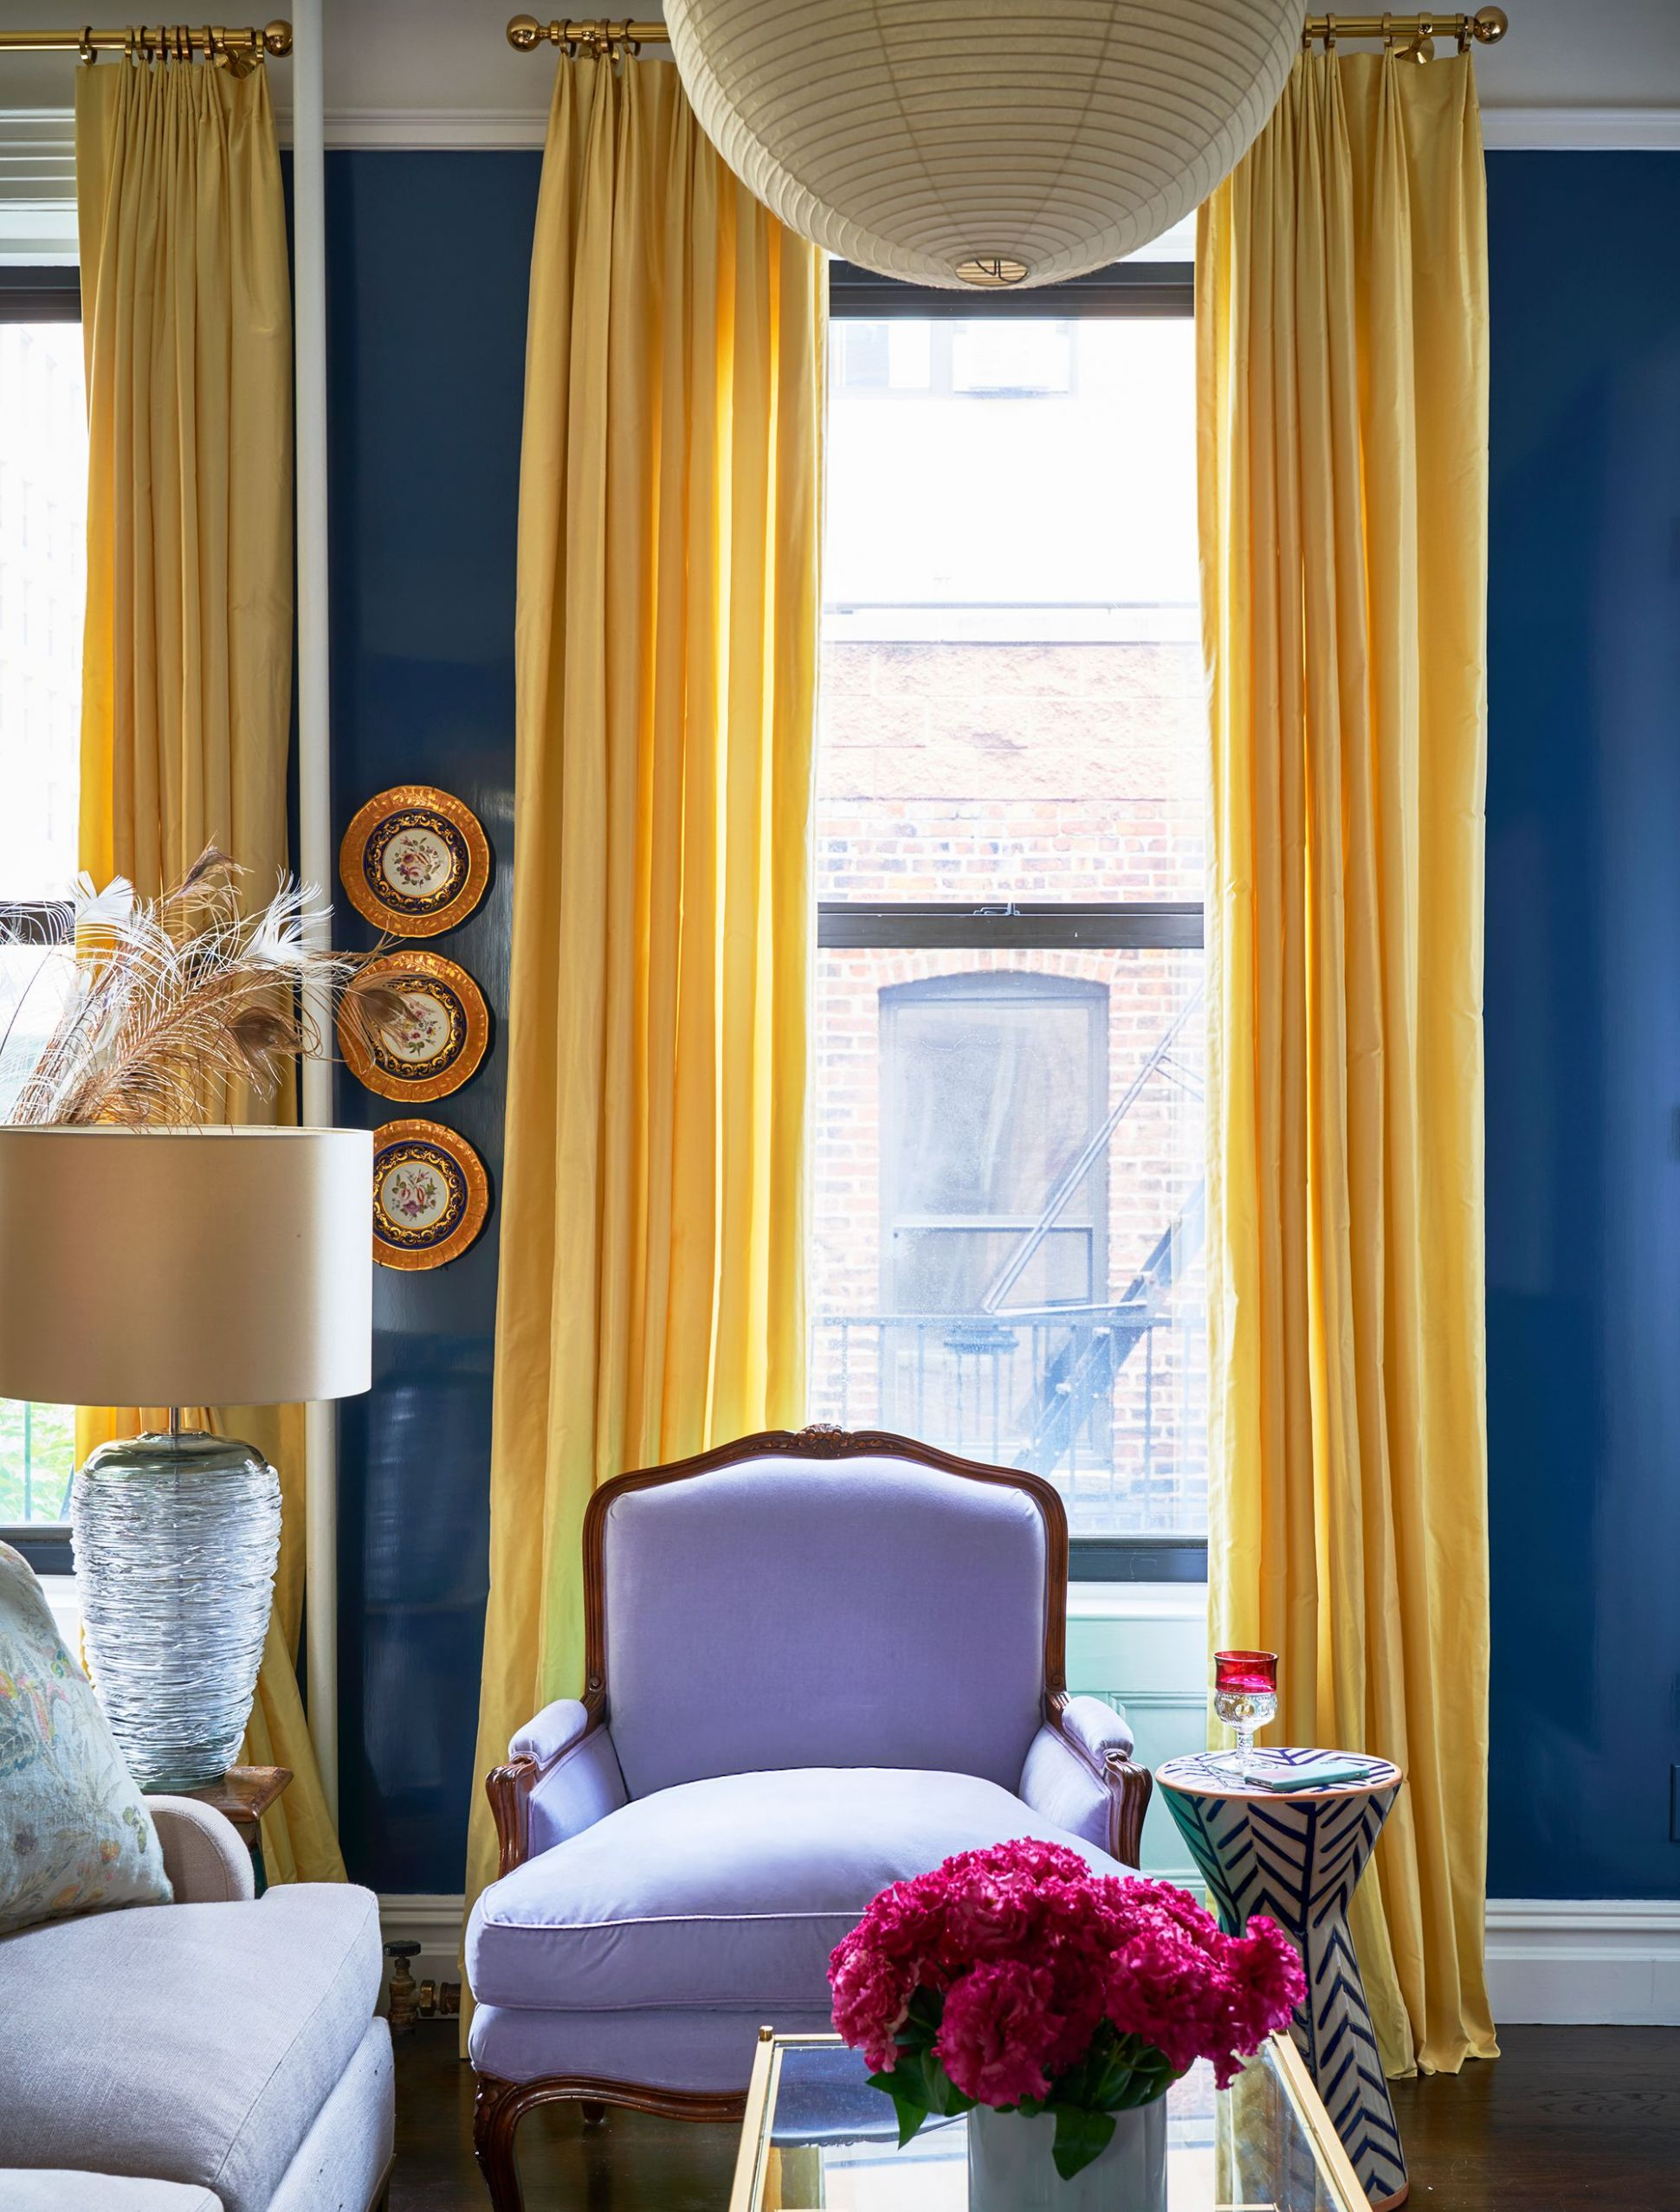 12 Best Window Treatment Ideas - Window Coverings, Curtains, & Blinds - window valance ideas for family room